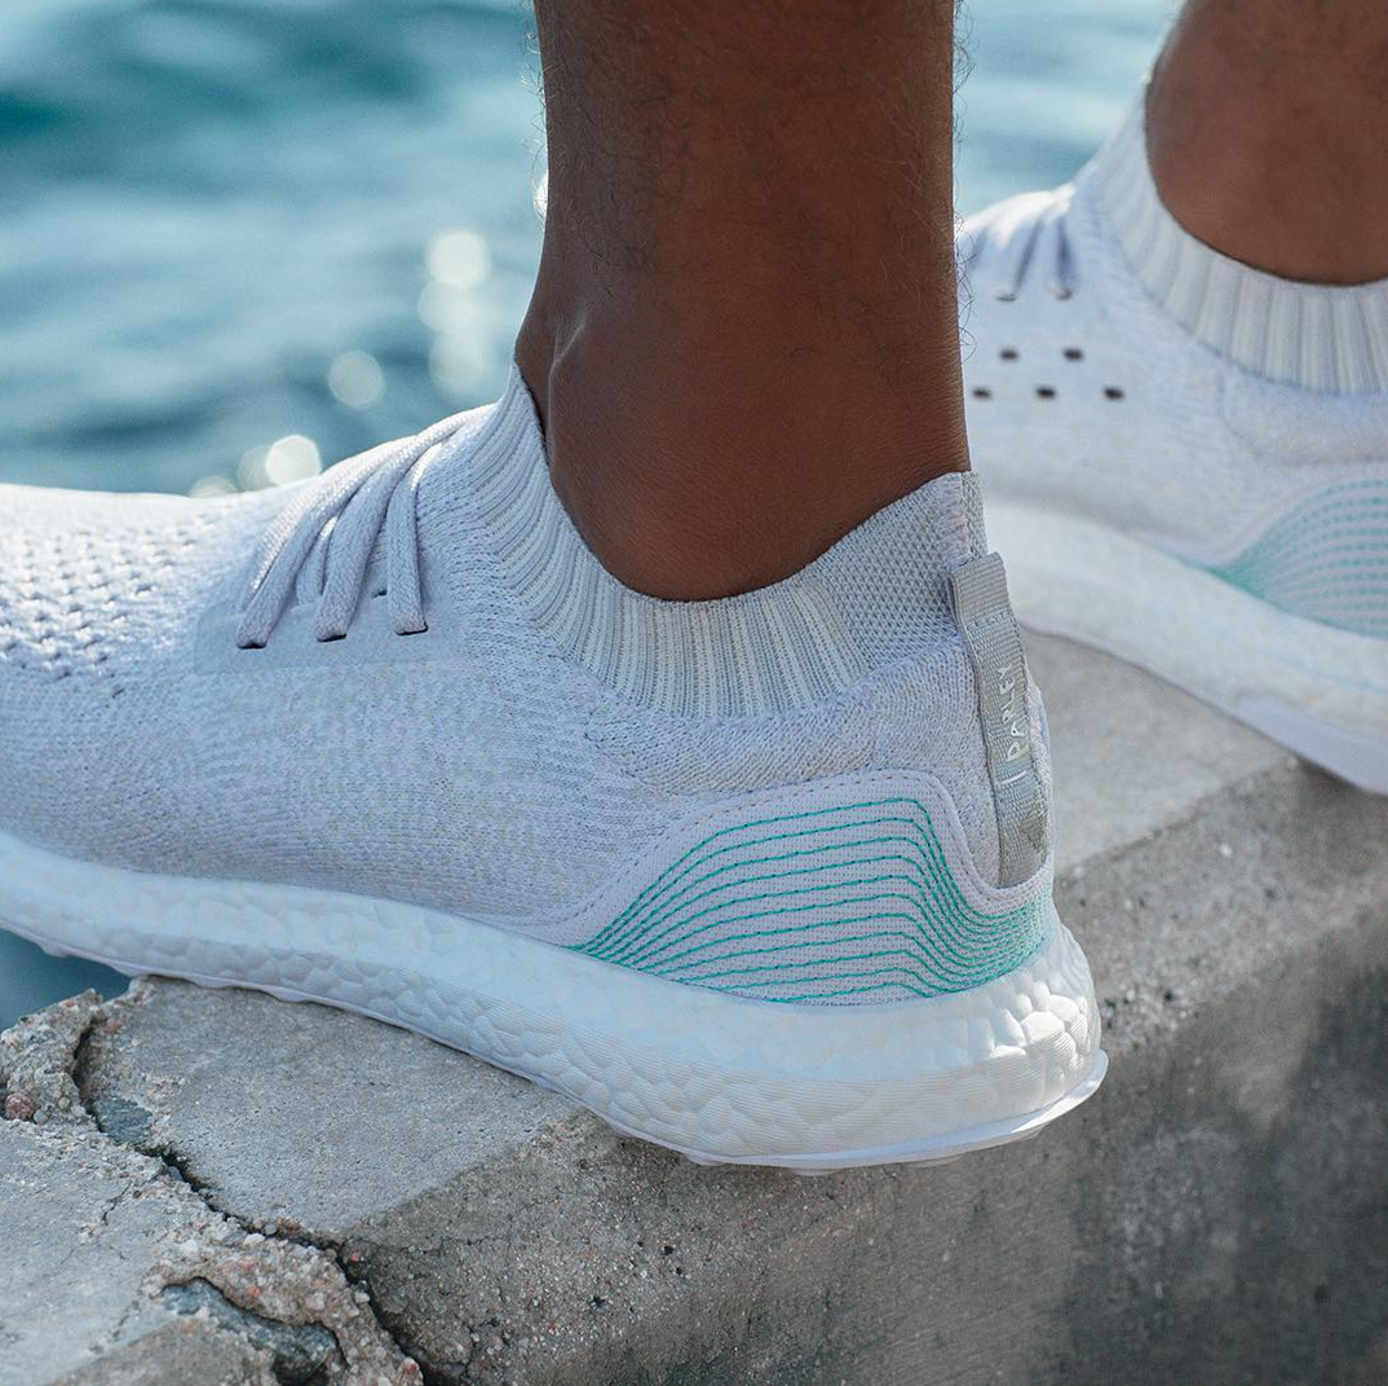 18283d818ce49 ... where to buy adidas ultraboost uncaged parley for the oceans 3. nov14  3f2e8 f31b8